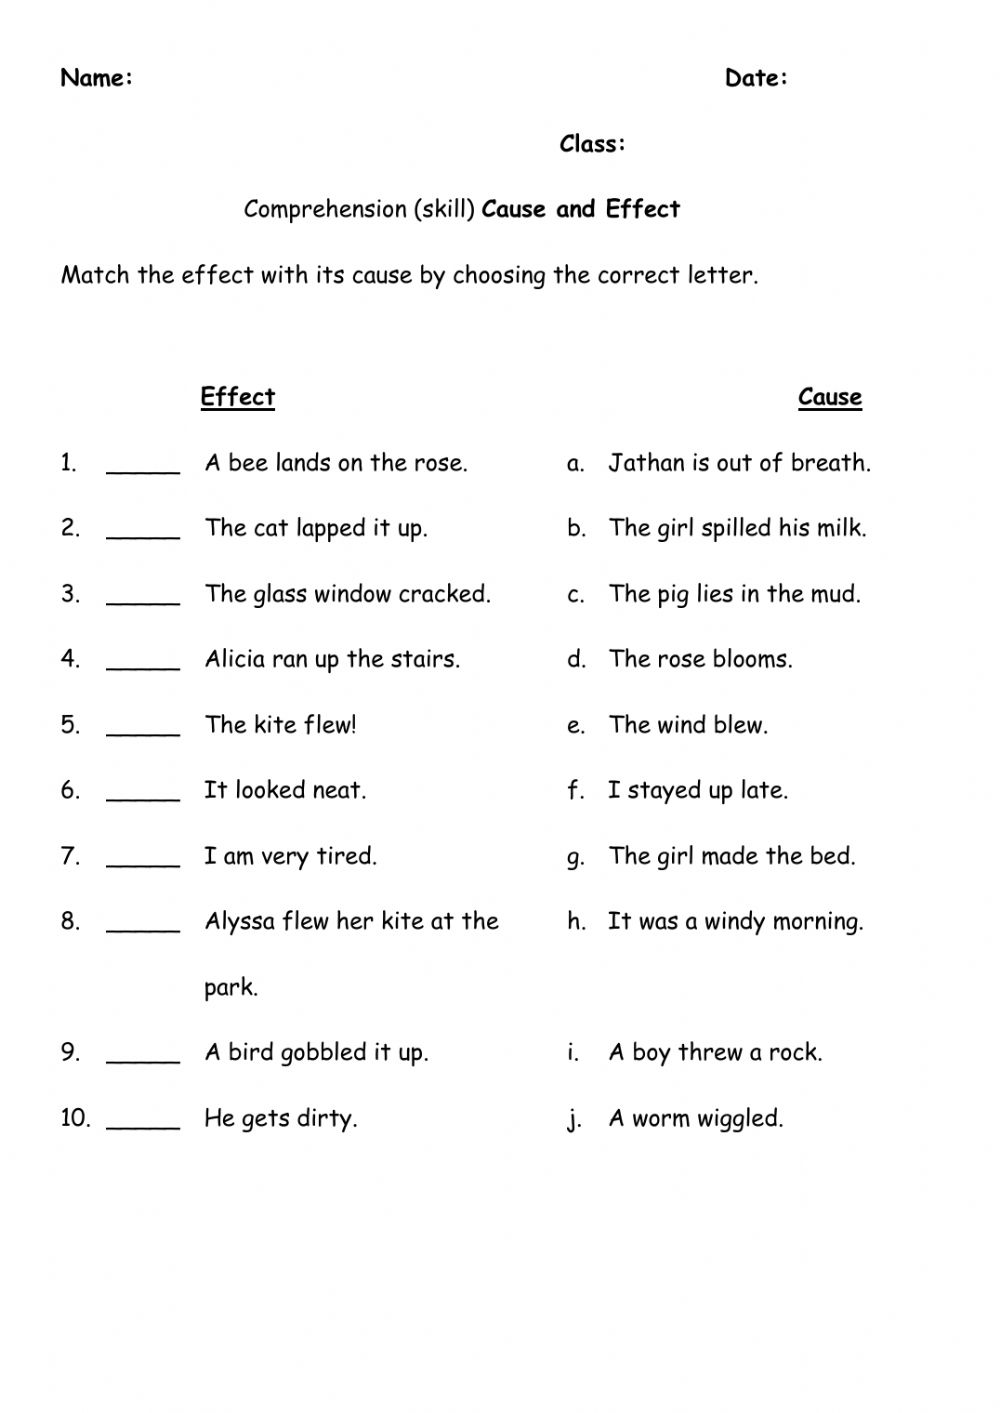 medium resolution of Cause and Effect exercise